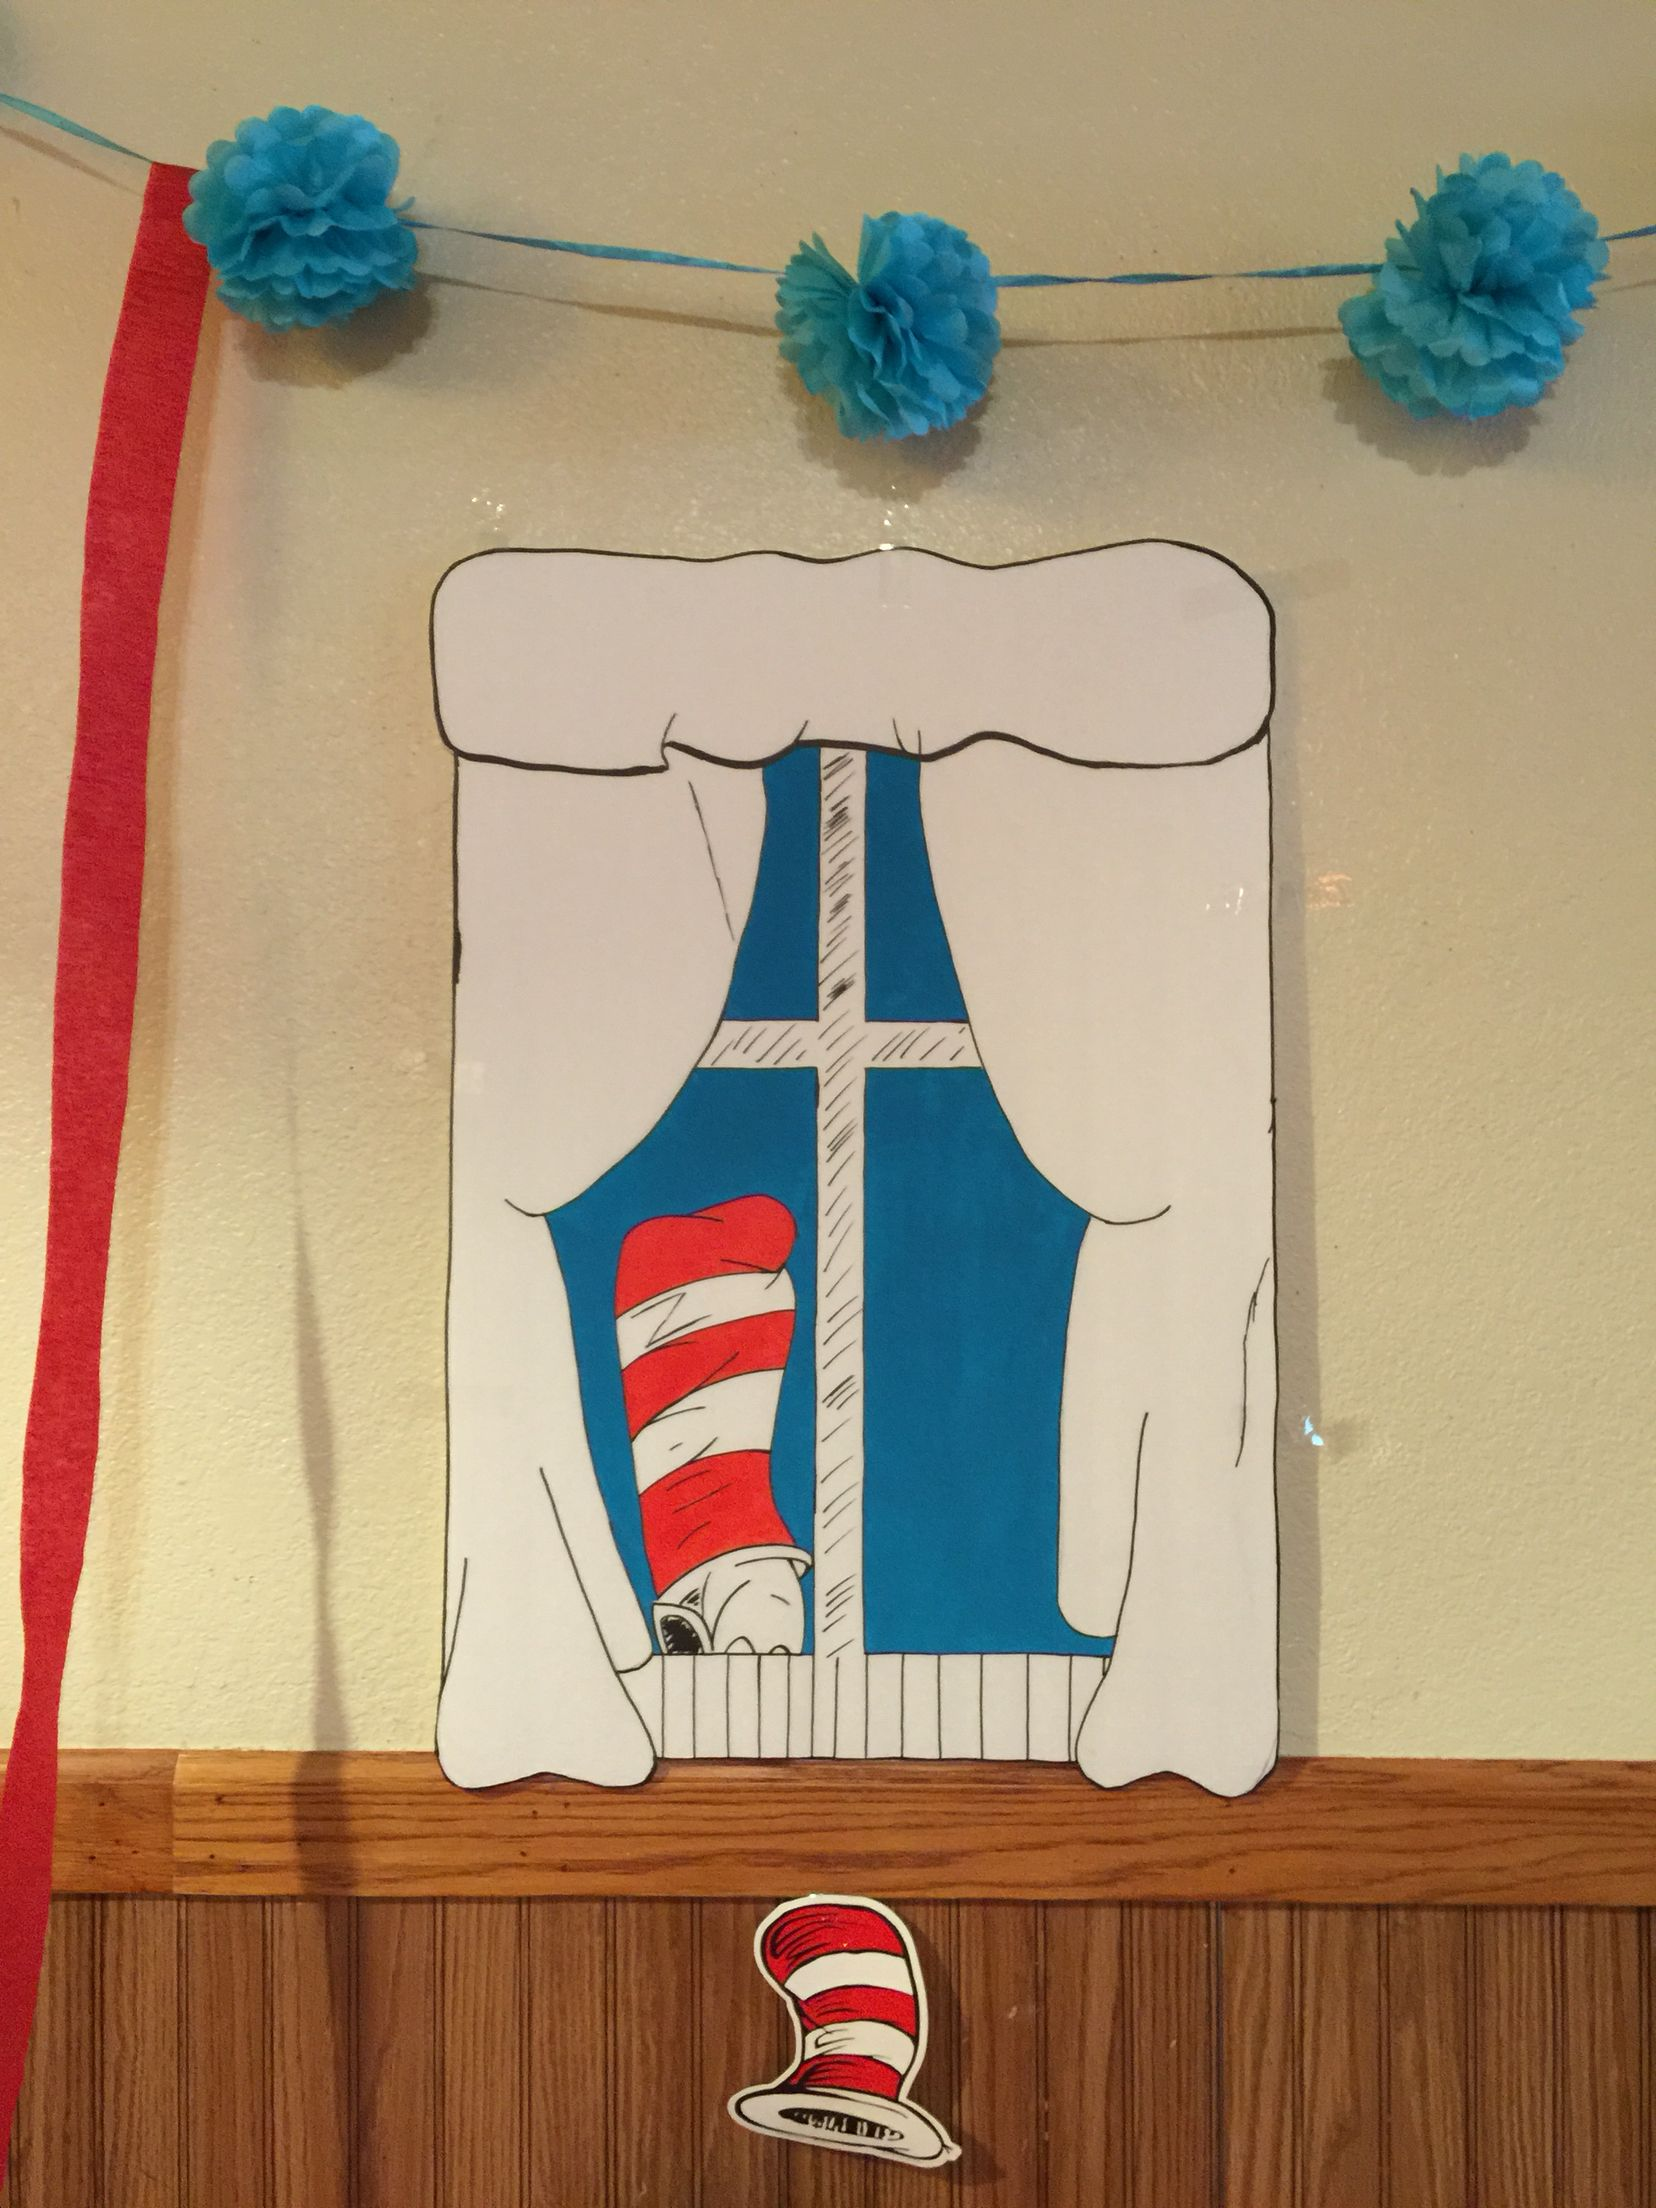 Dr Seuss Cat In The Hat Window Display I Made For Cat In The Hat Birthday Party By Zaida He Dr Seuss Cat In The Hat Cat In The Hat